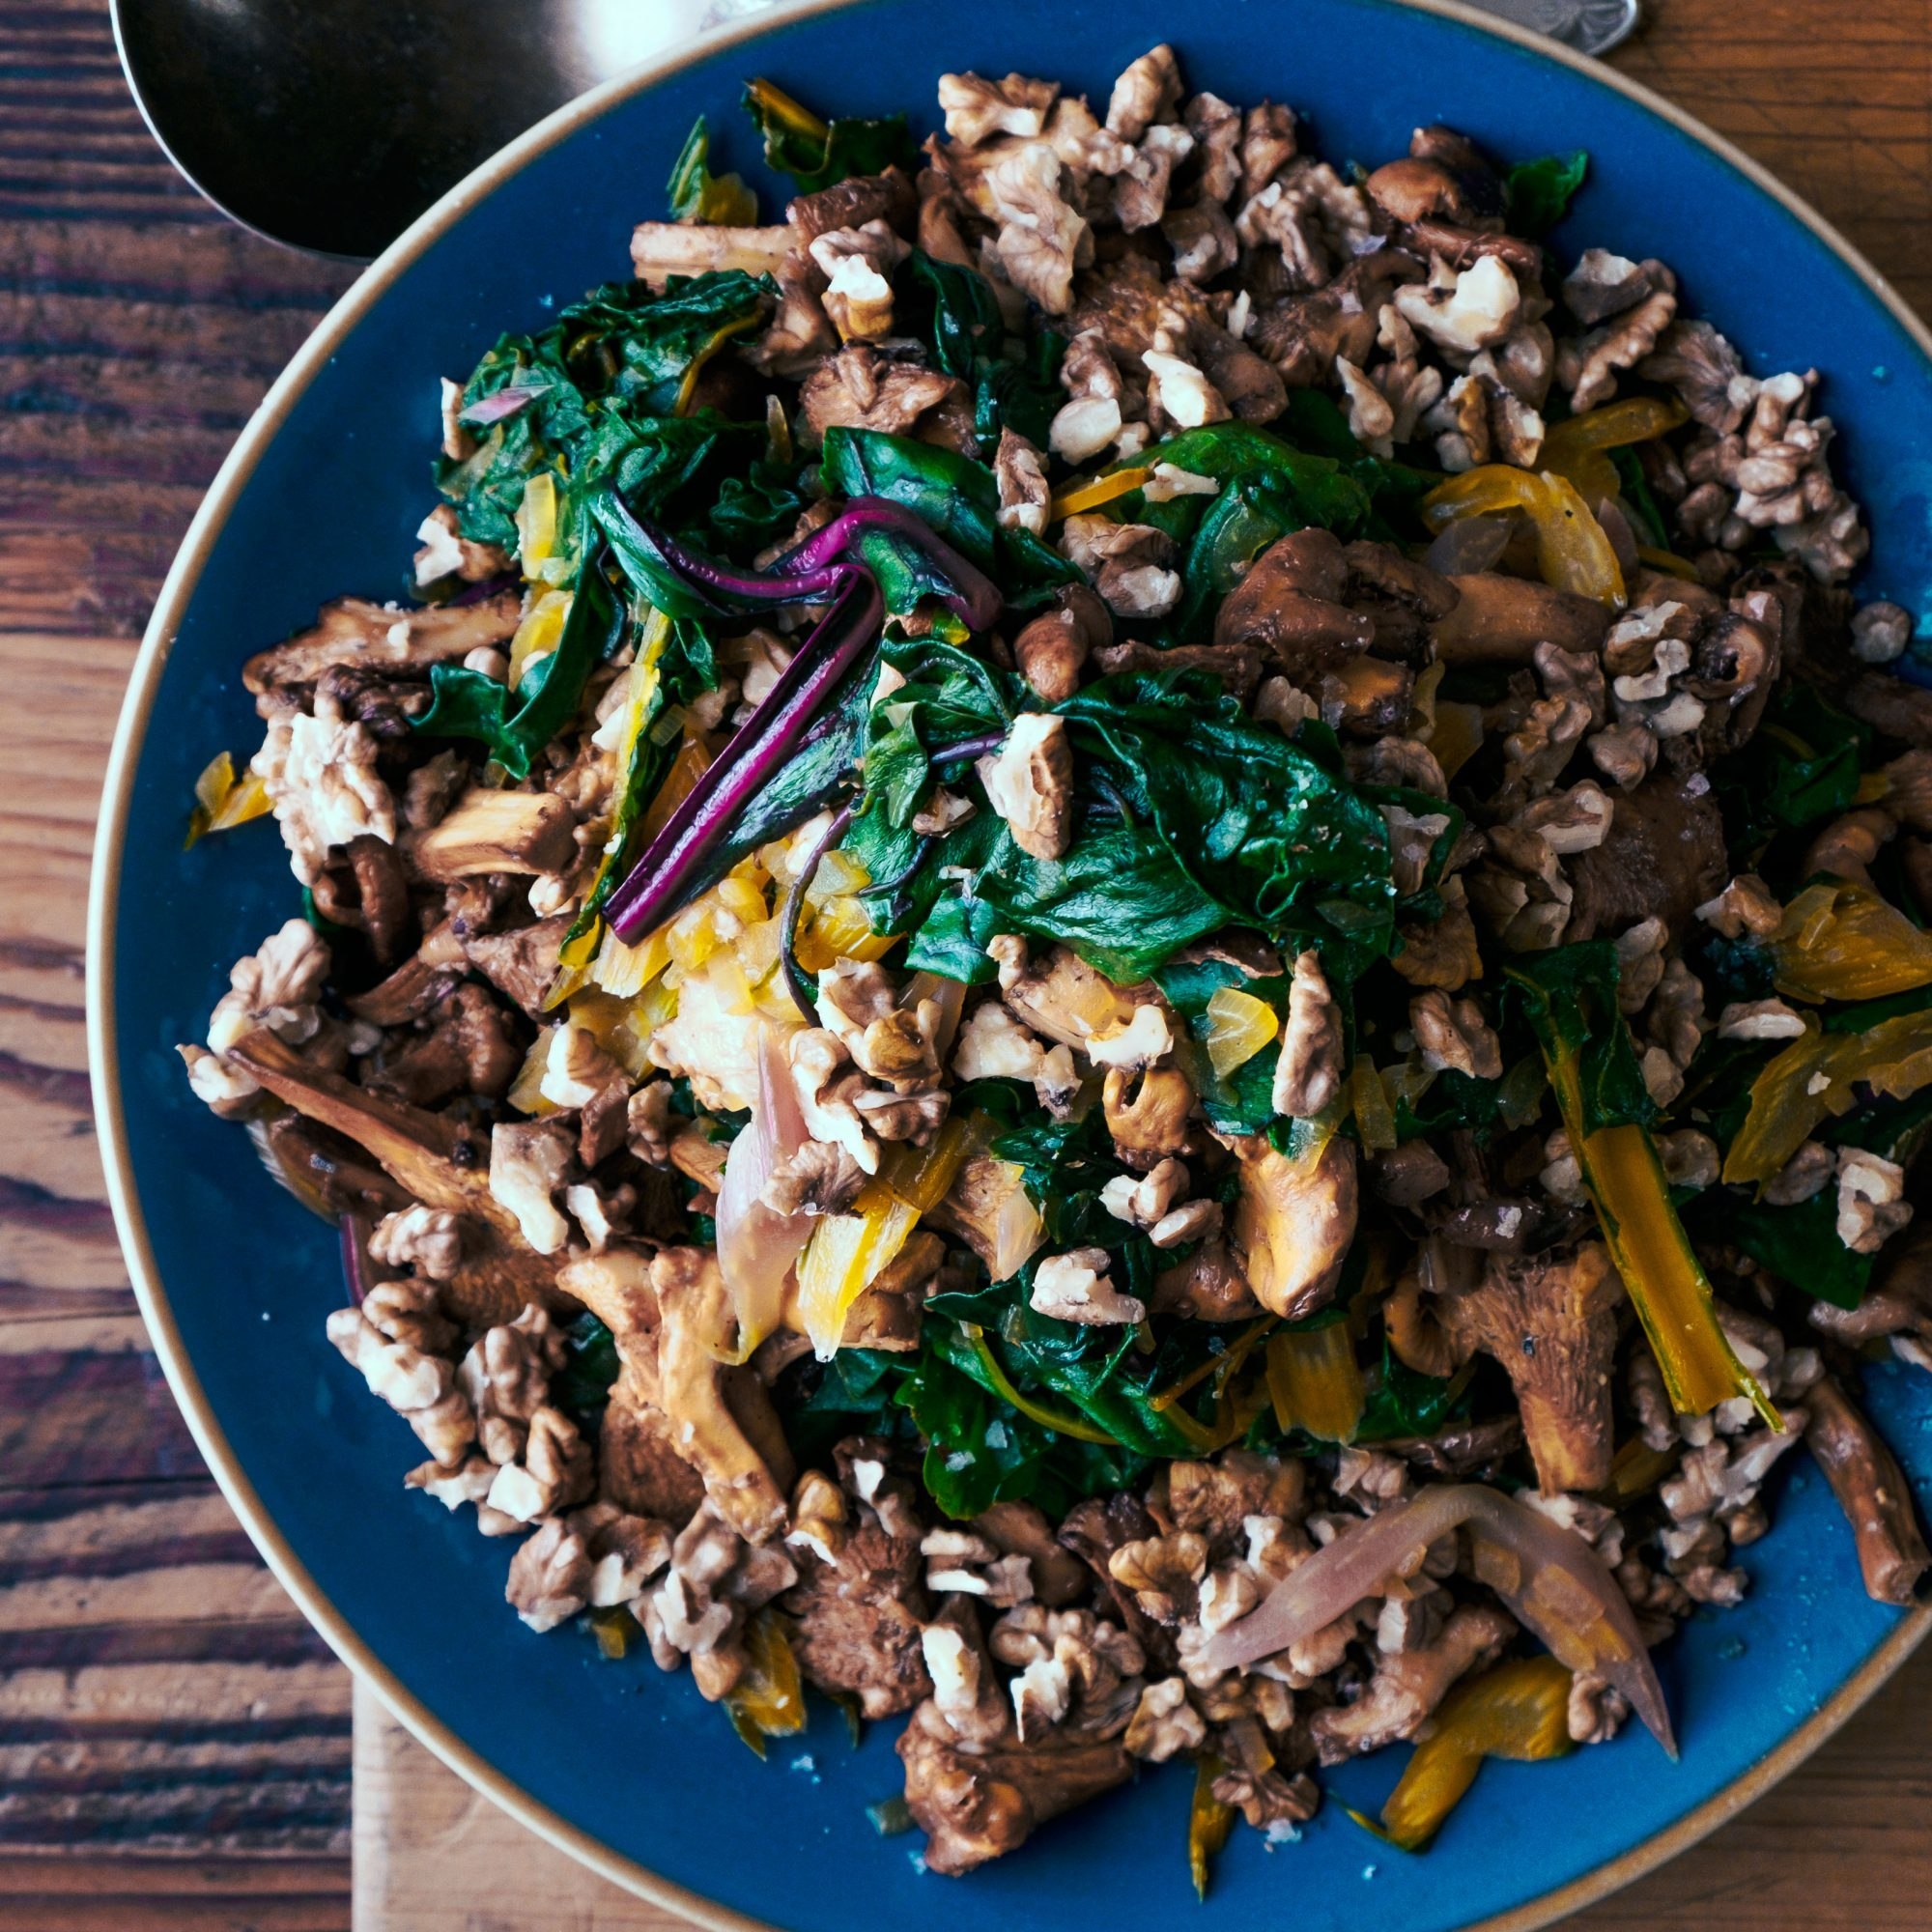 Rainbow Chard with Chanterelles and Walnuts